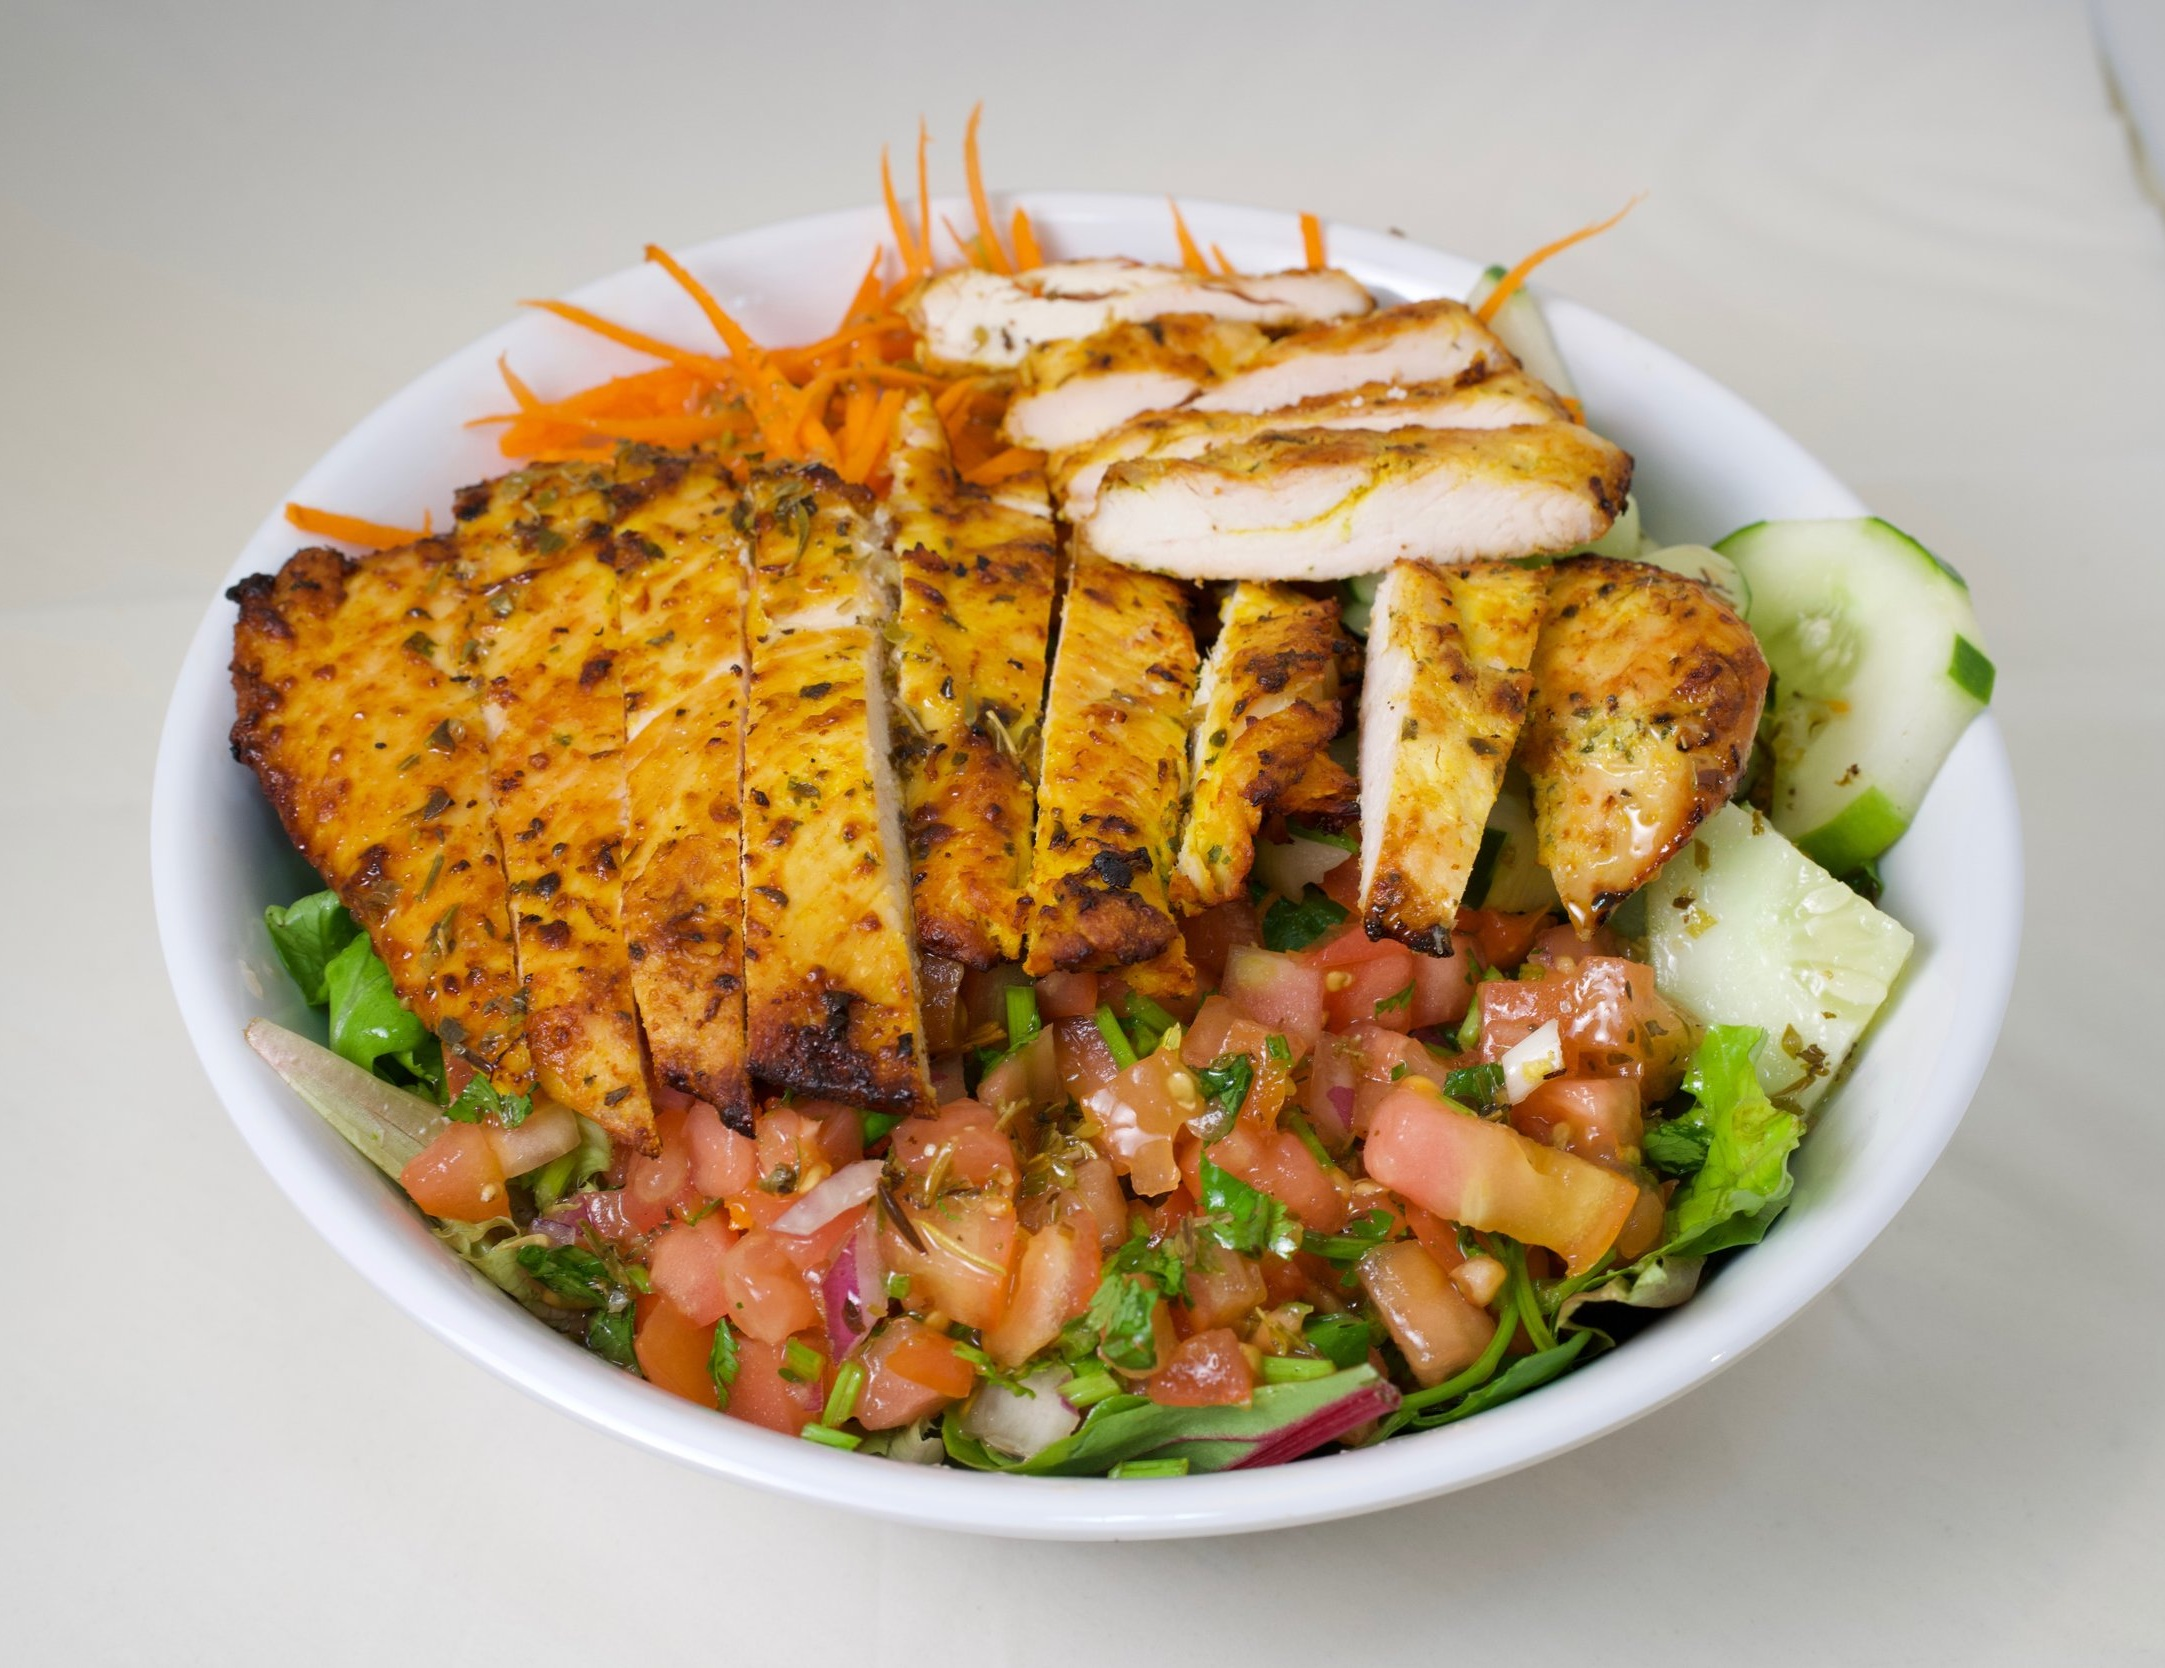 99. Energy Salad w. Chicken